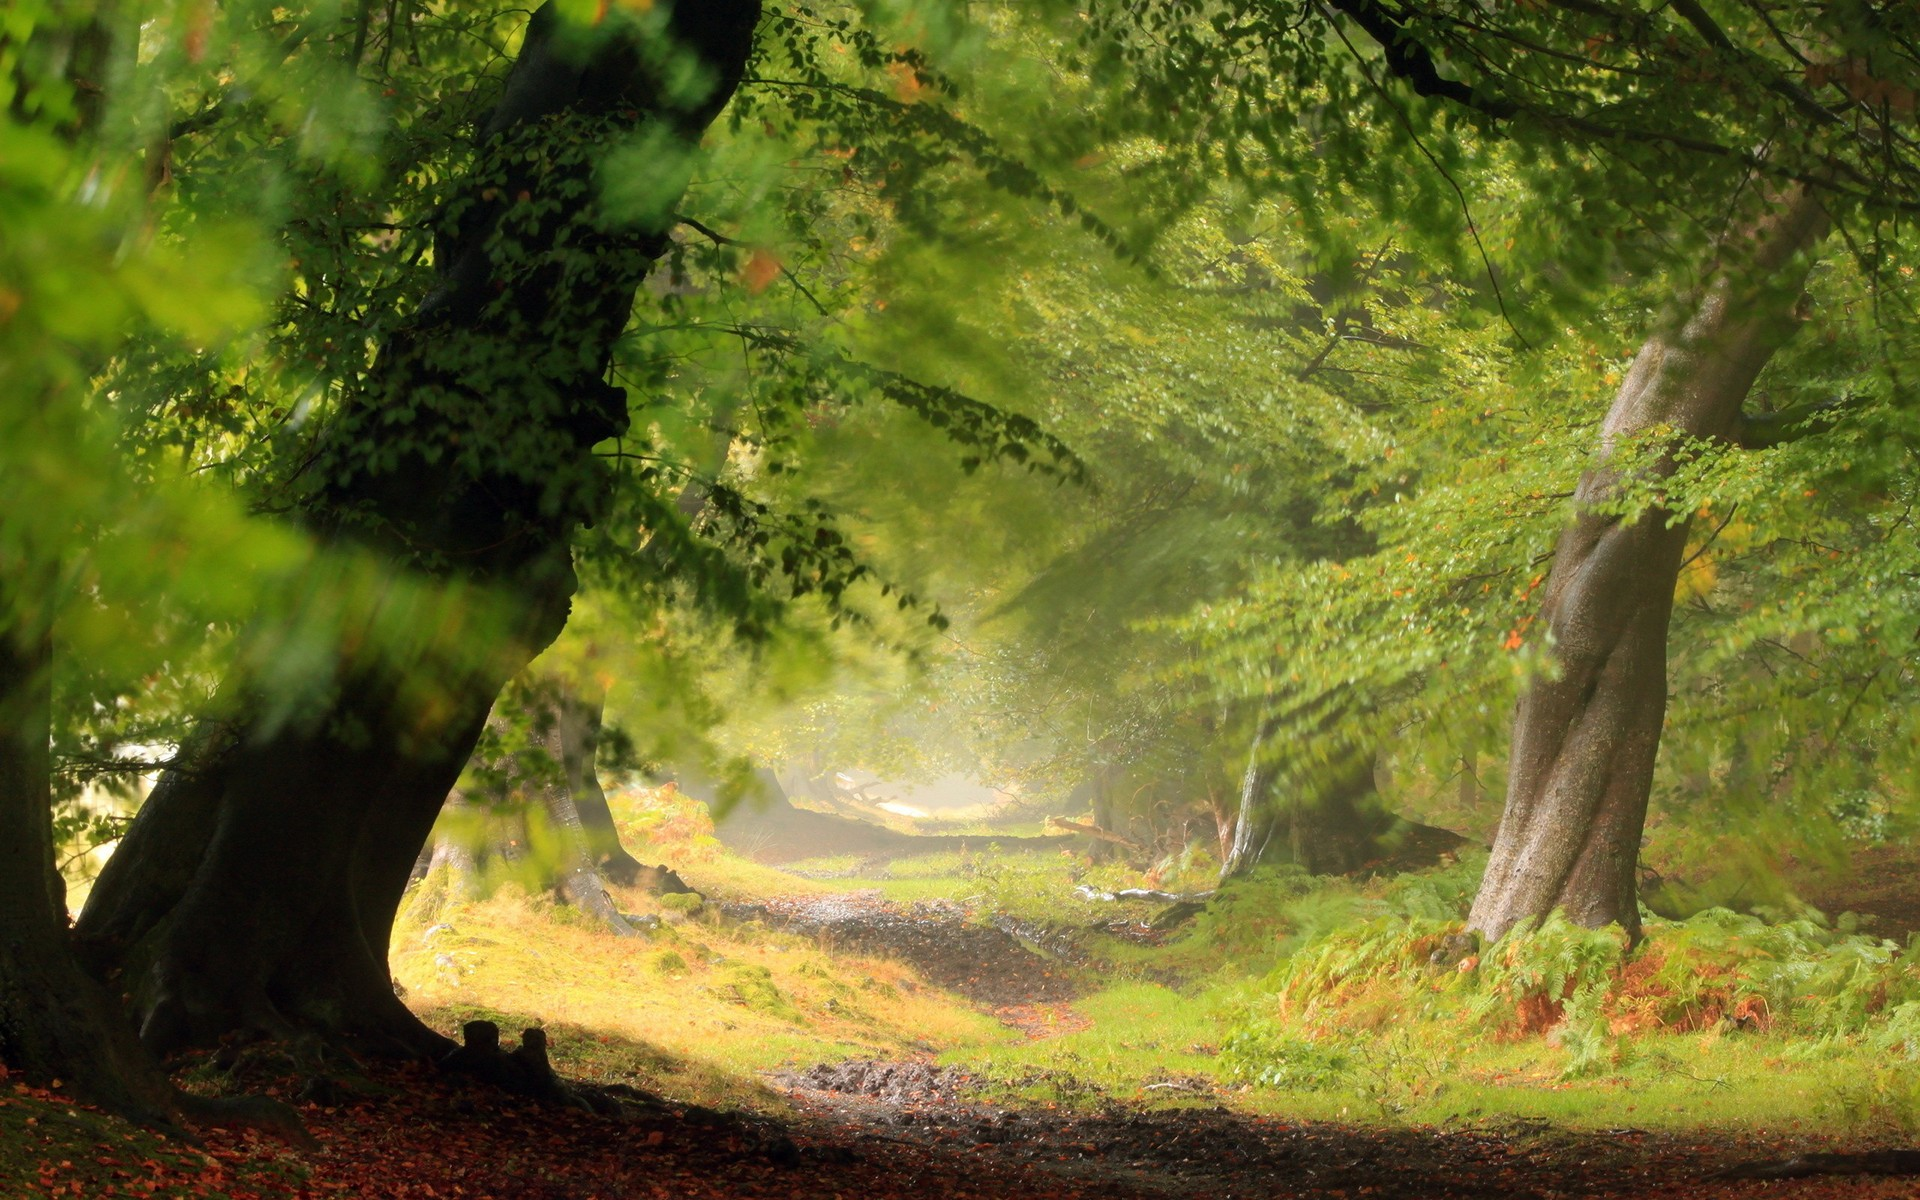 Forest wallpaper HD ·① Download free awesome backgrounds ...